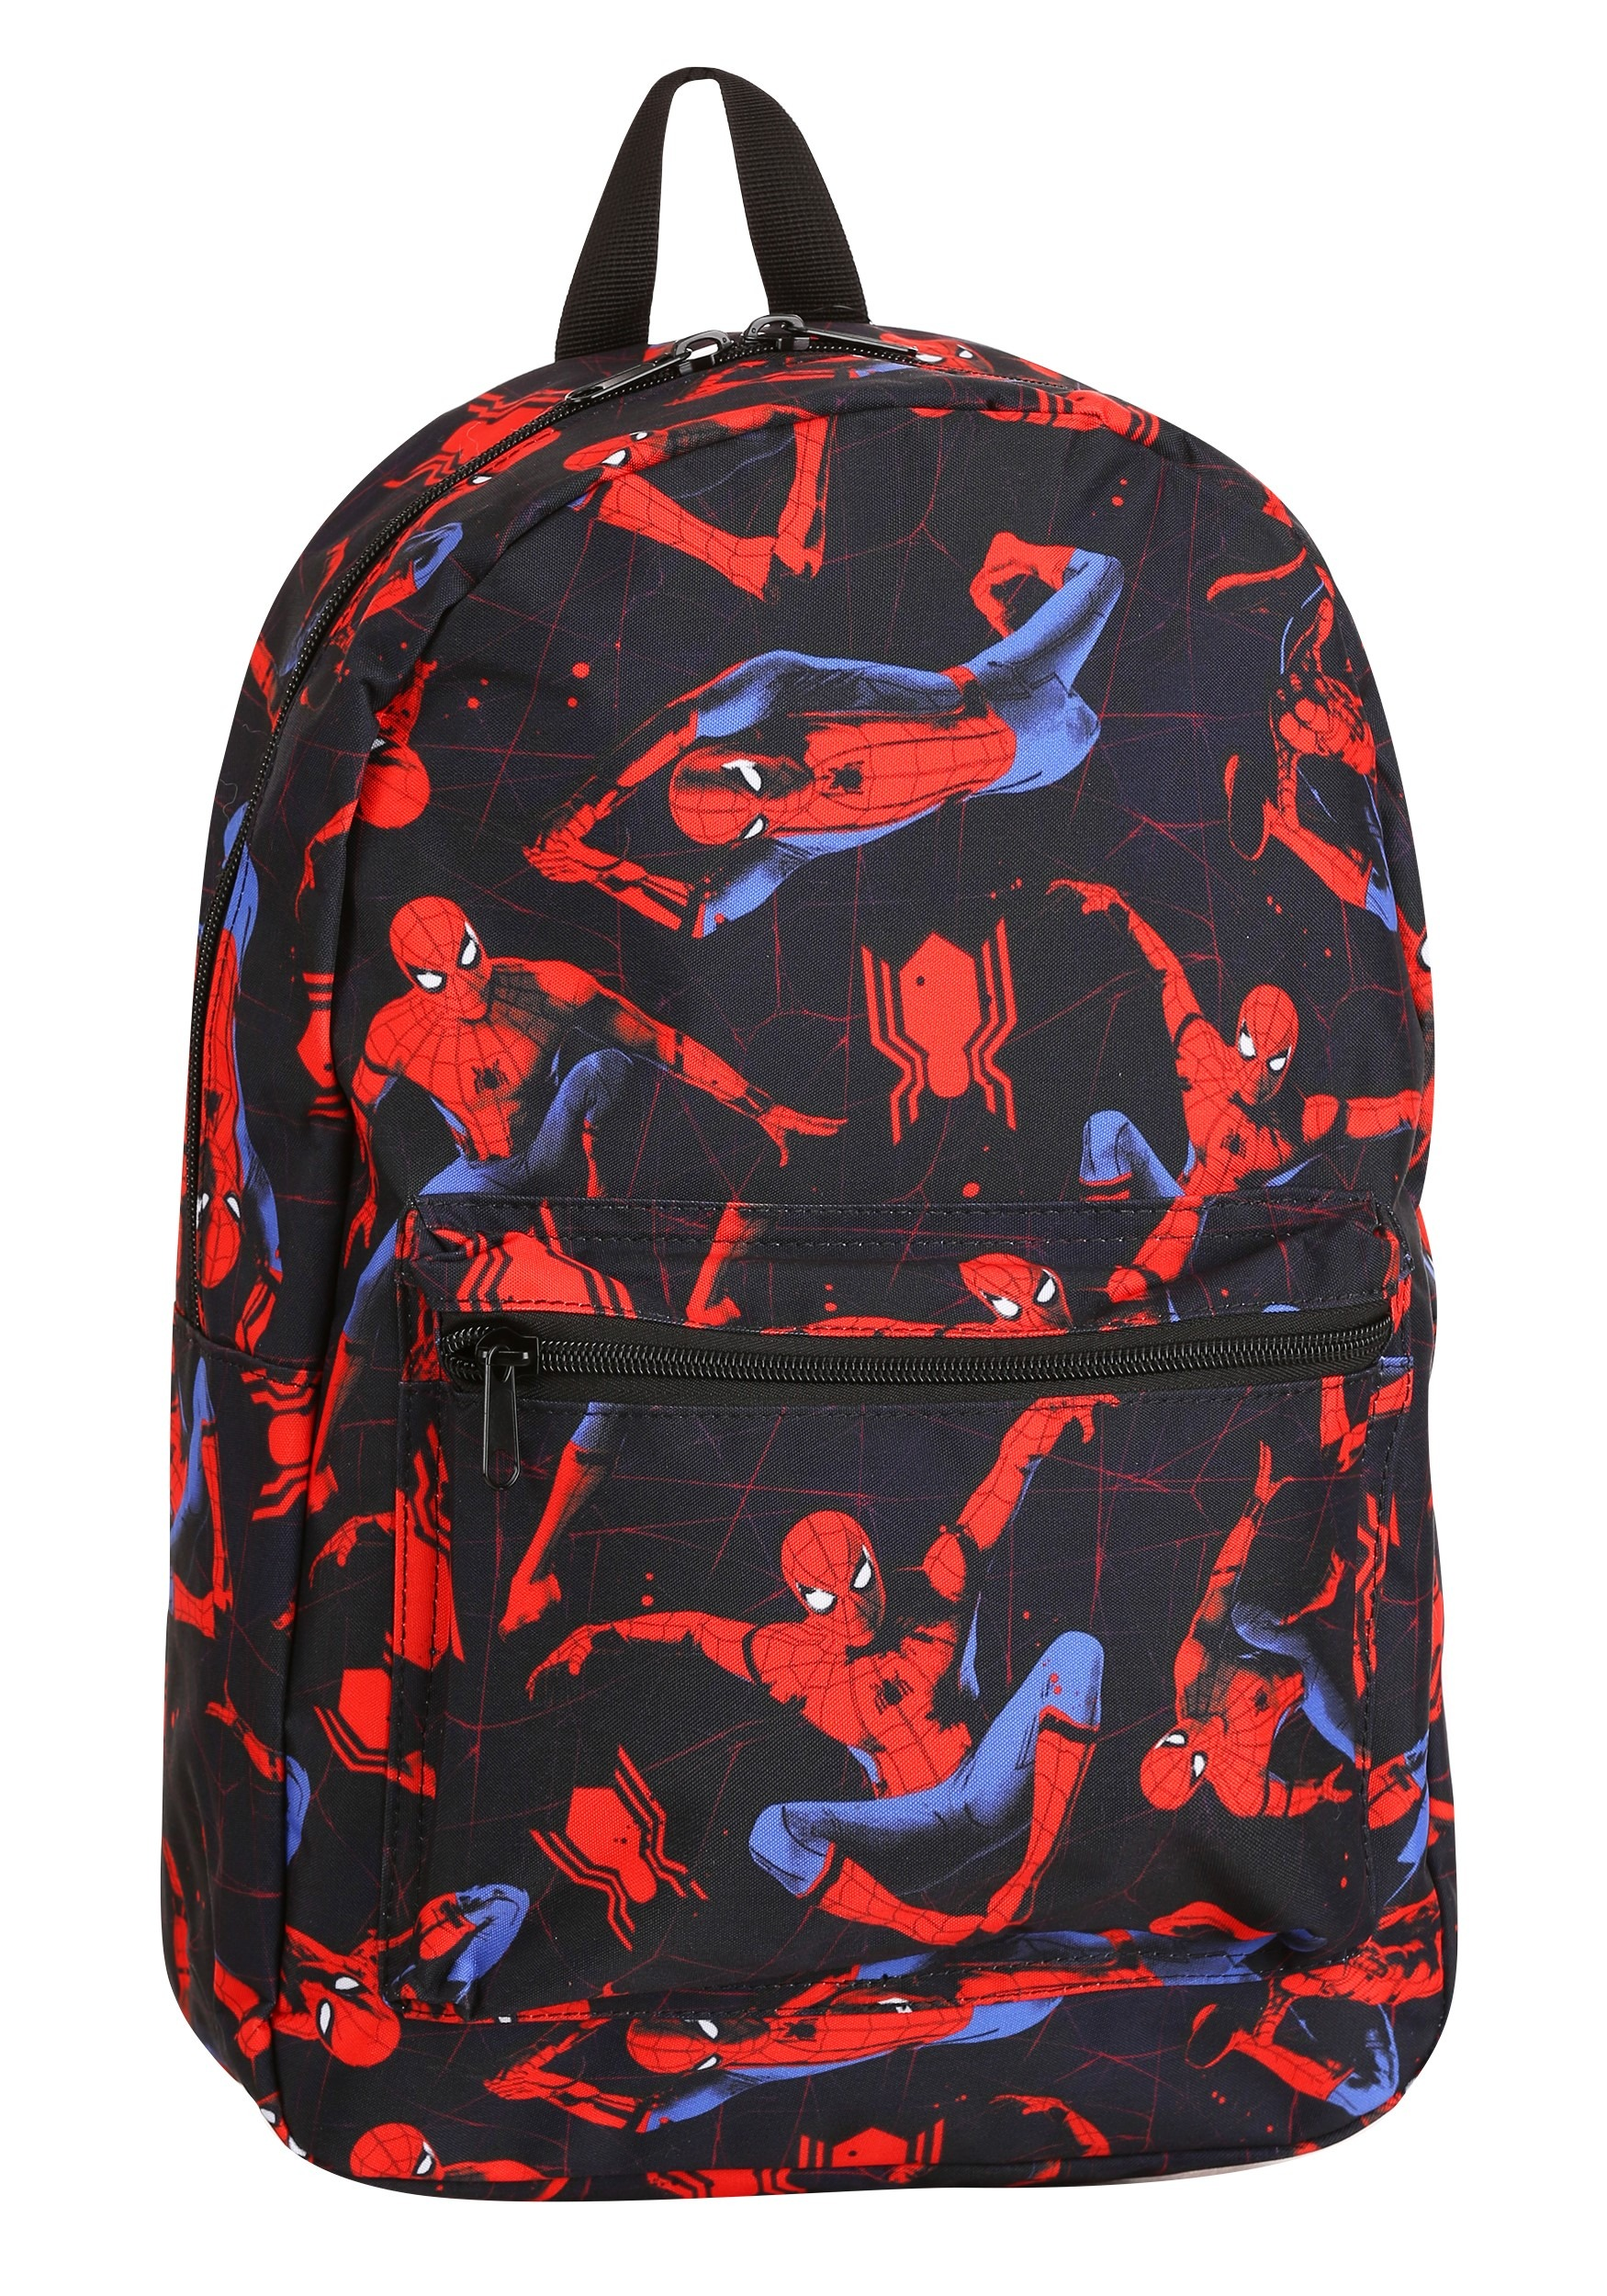 Classic Spider Man Print Backpack